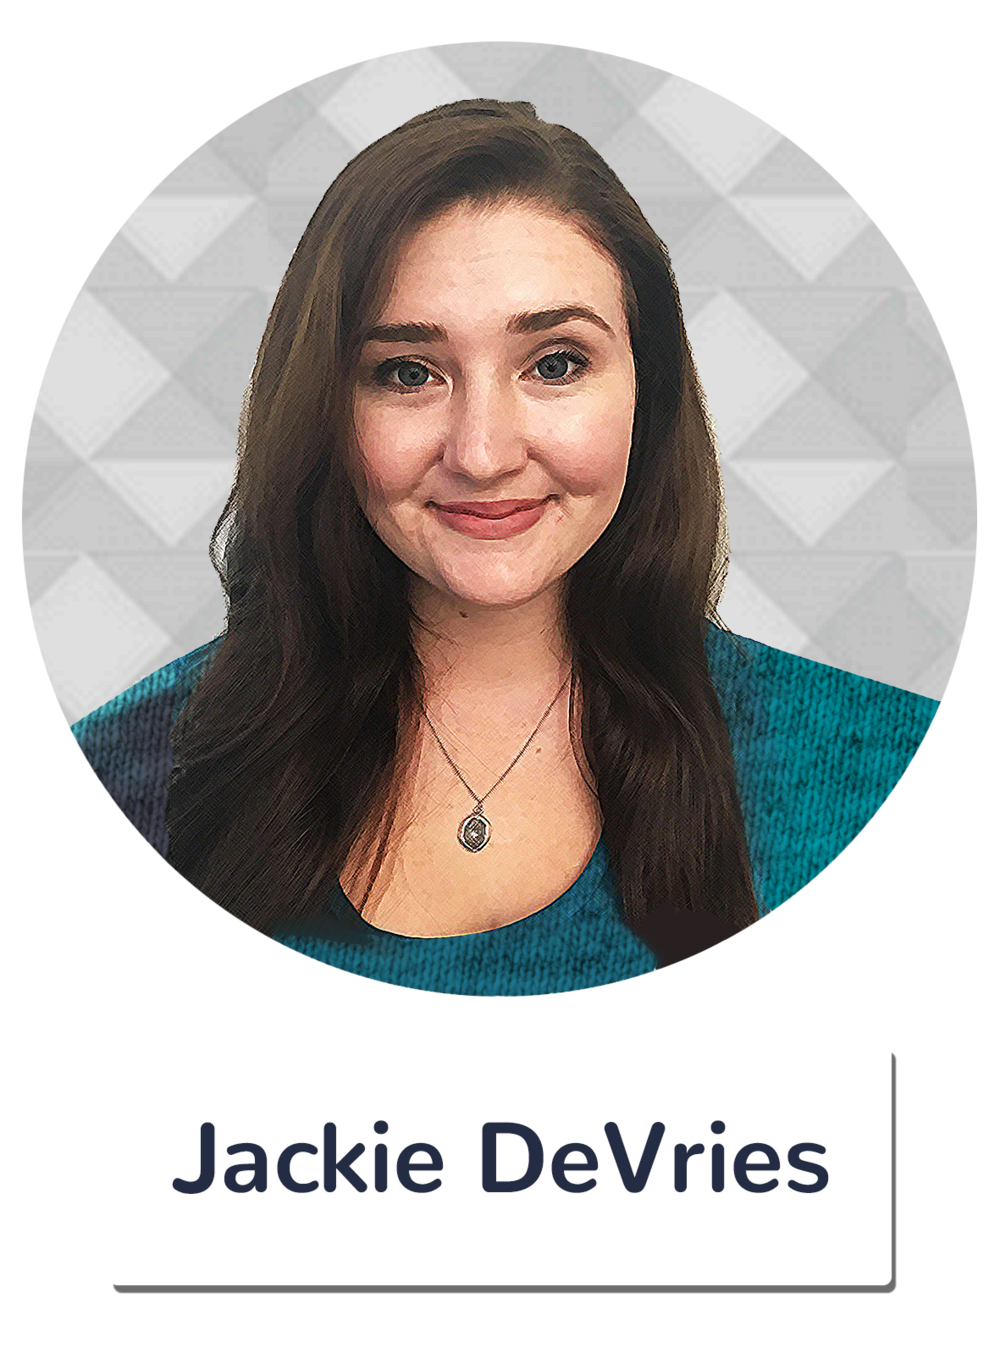 Jackie DeVries is a second-year medical student at University of California, San Diego. She's interested in making studying less dreary by being creative while learning. When she's not at school, she likes spending time with her husband and dog, and indulging in creative hobbies. She shares her educational journey in real-time at  instagram.com/jackieplans